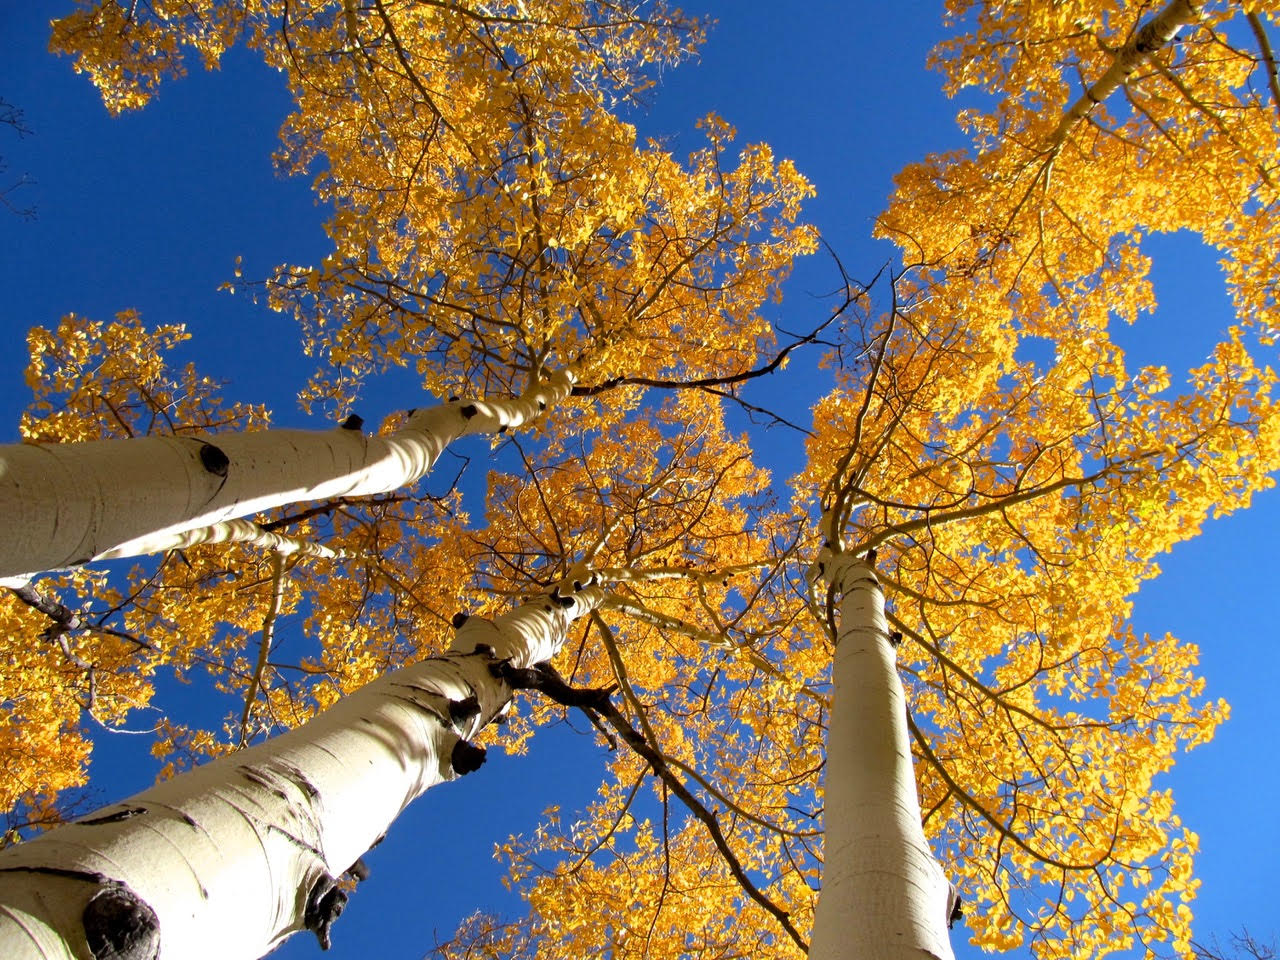 Aspen trees in the fall.